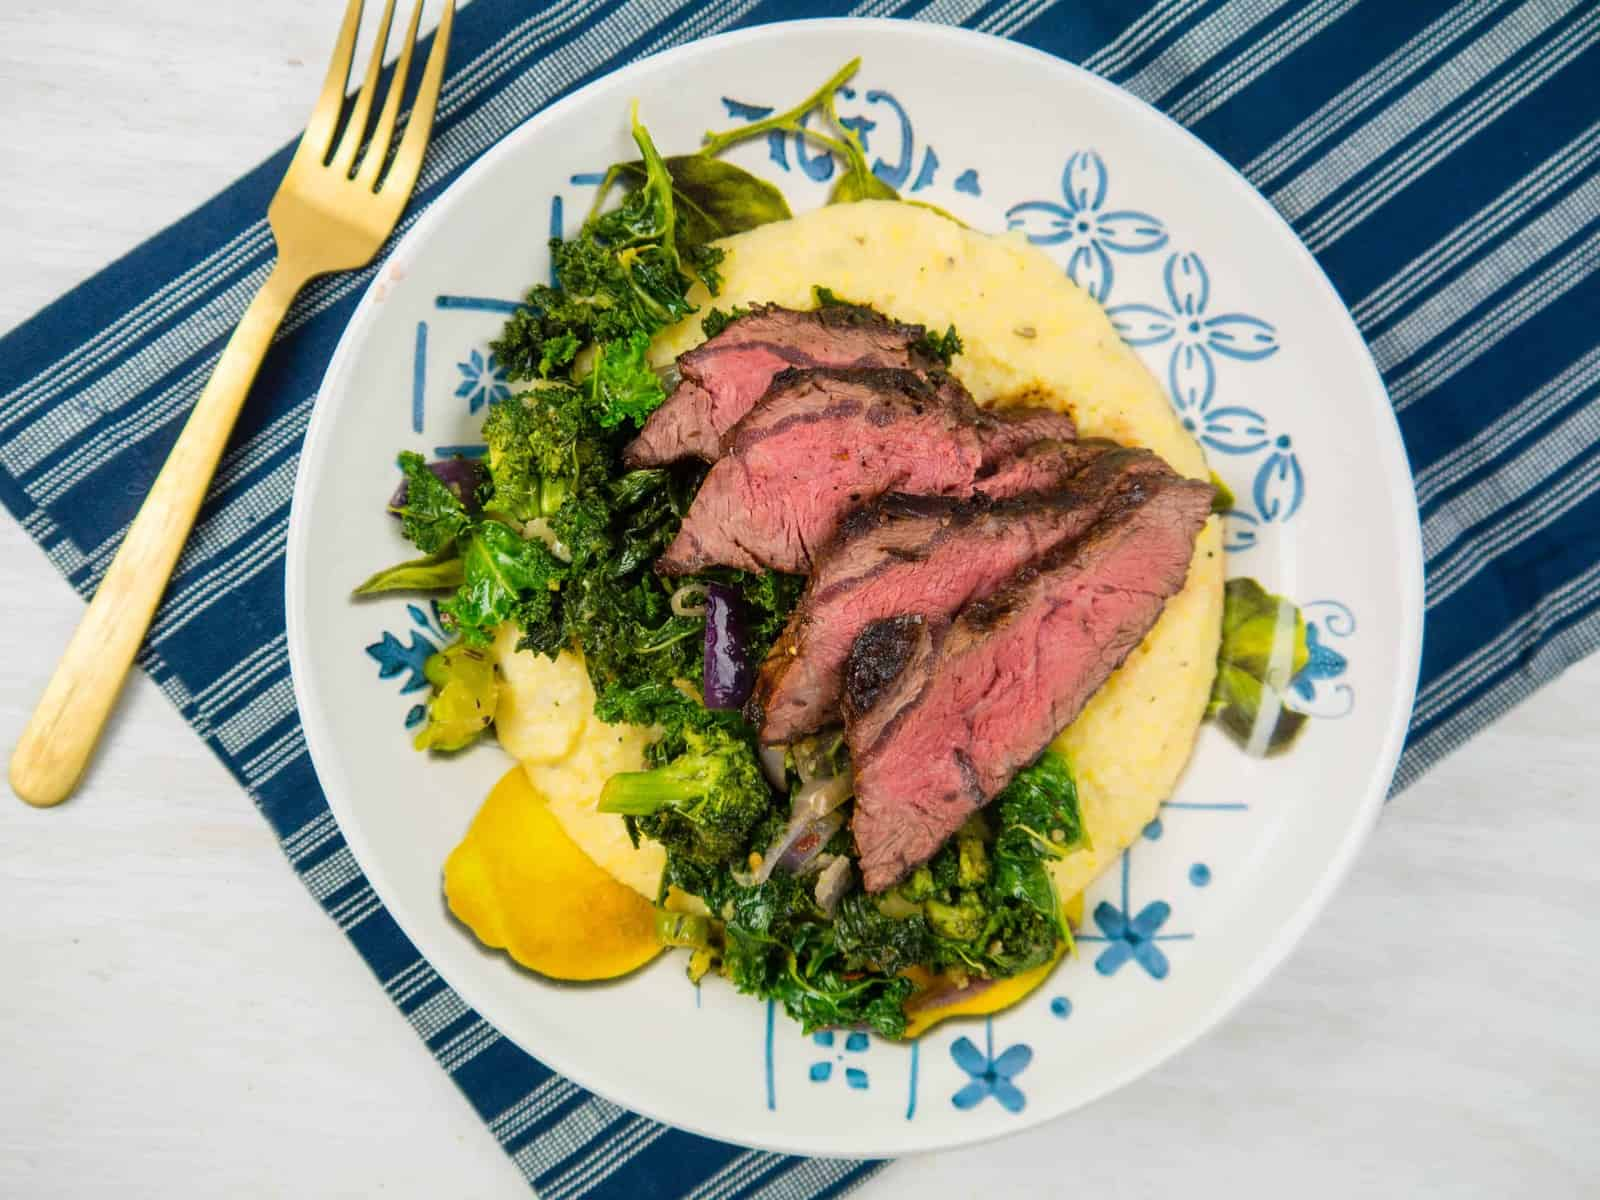 Cheesy Polenta with Grilled Steak and Garlicky Greens